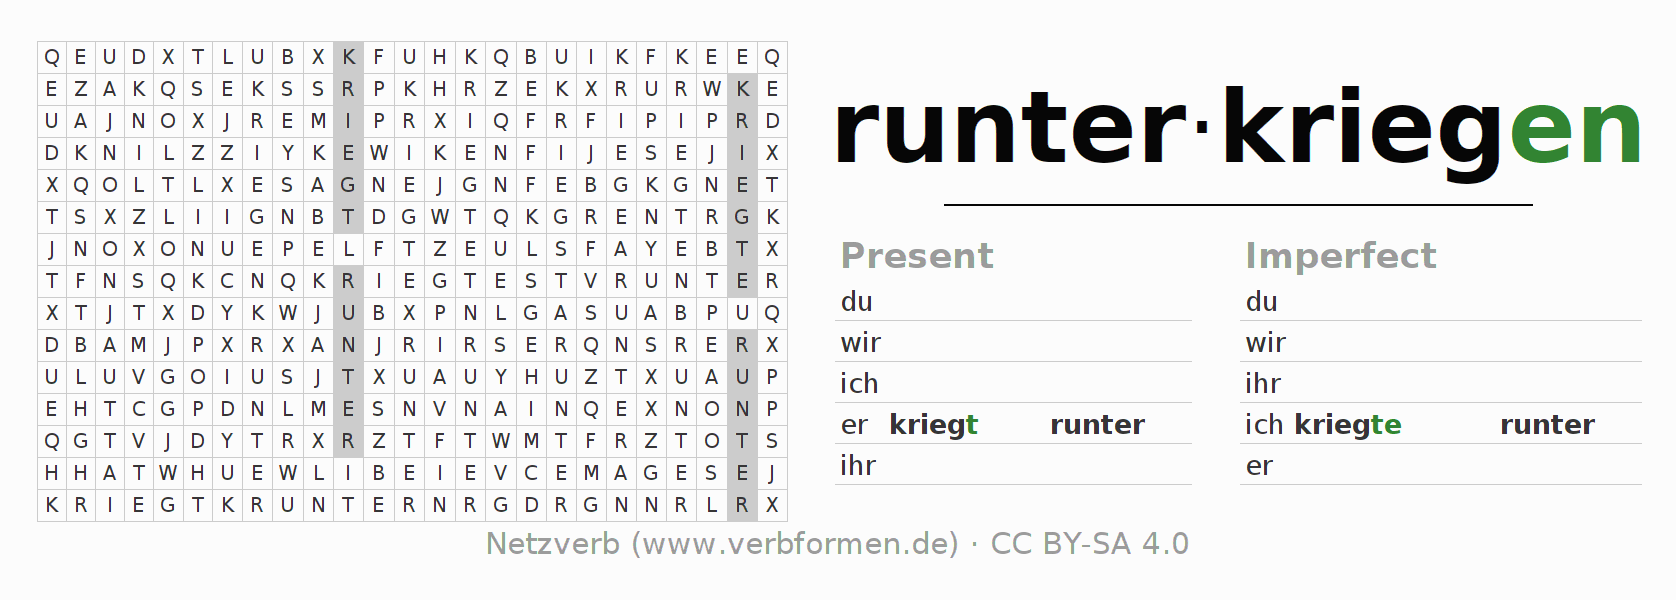 Word search puzzle for the conjugation of the verb runterkriegen